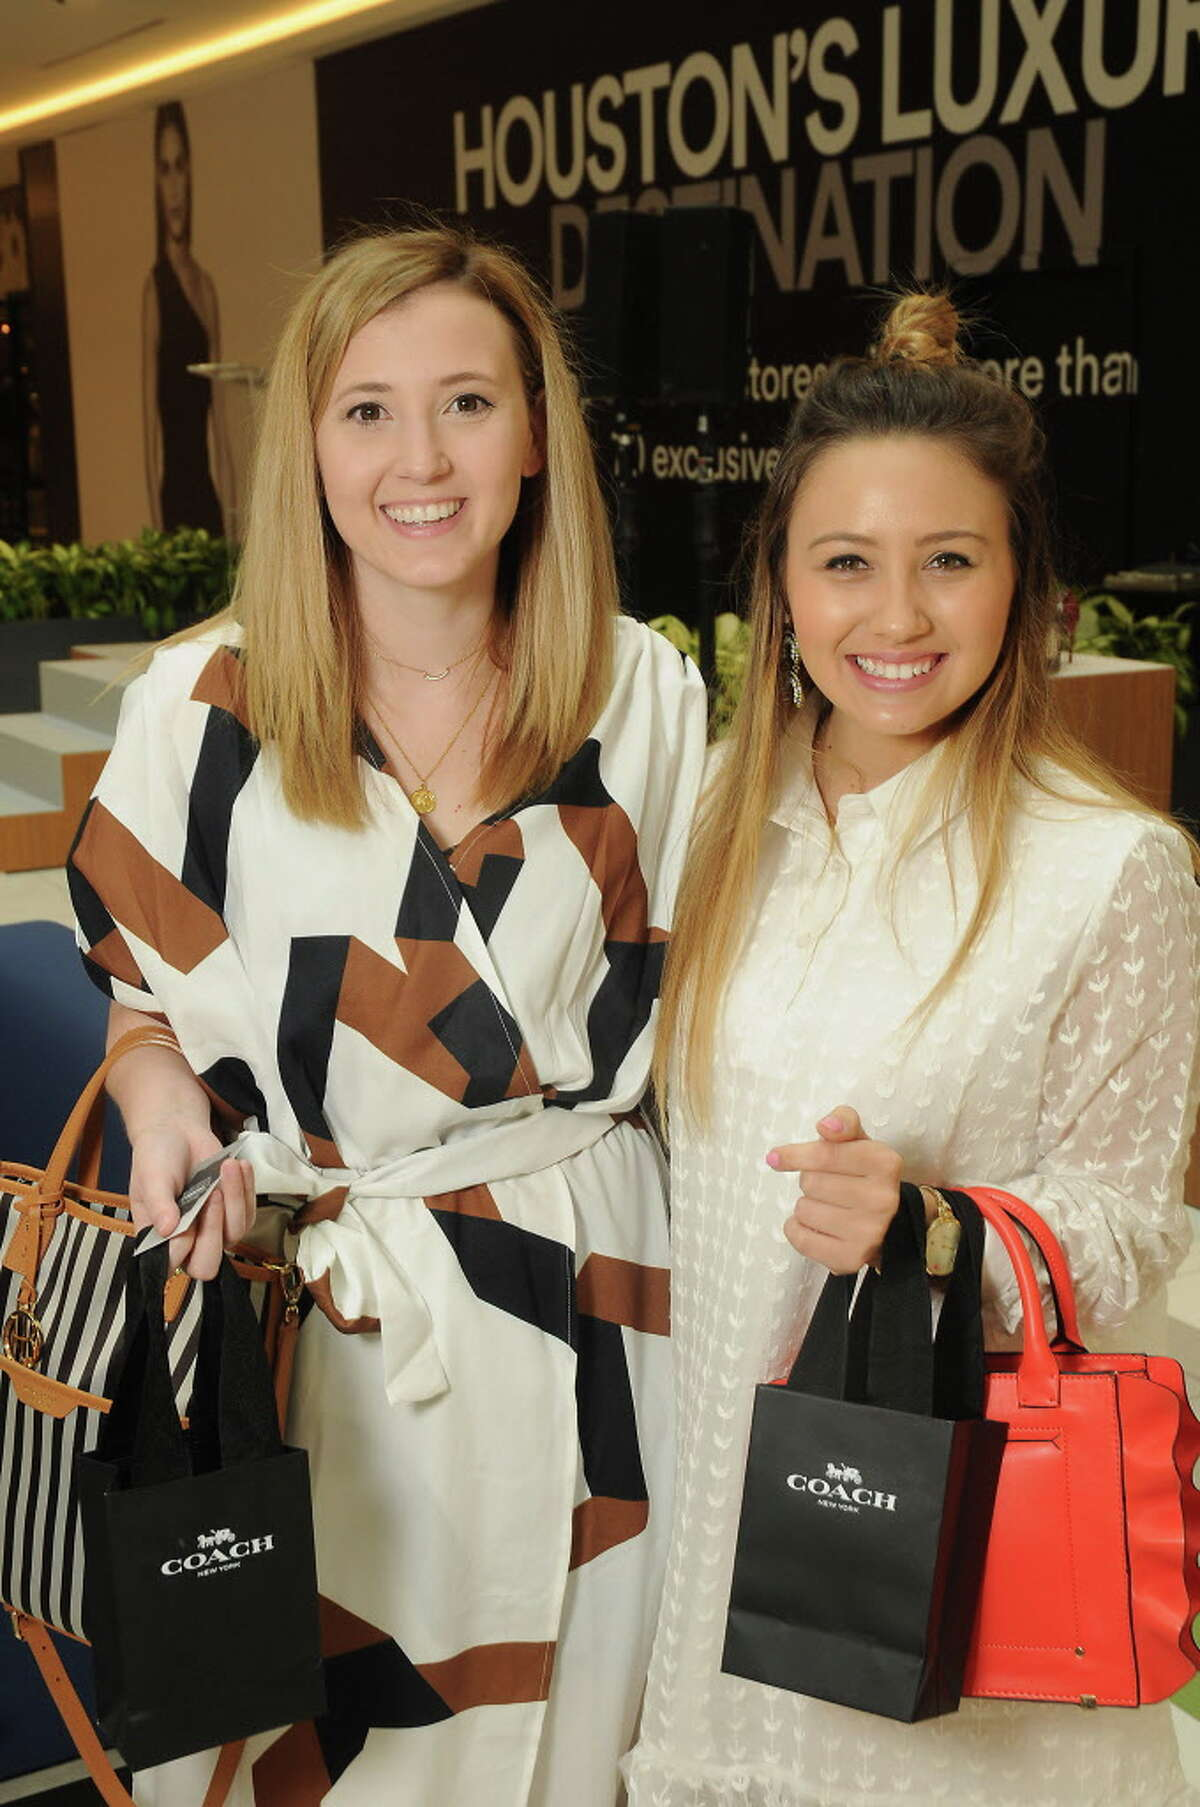 """Haley Freytag and Kristine Pagel during the Galleria IV's """"Influencer"""" event."""